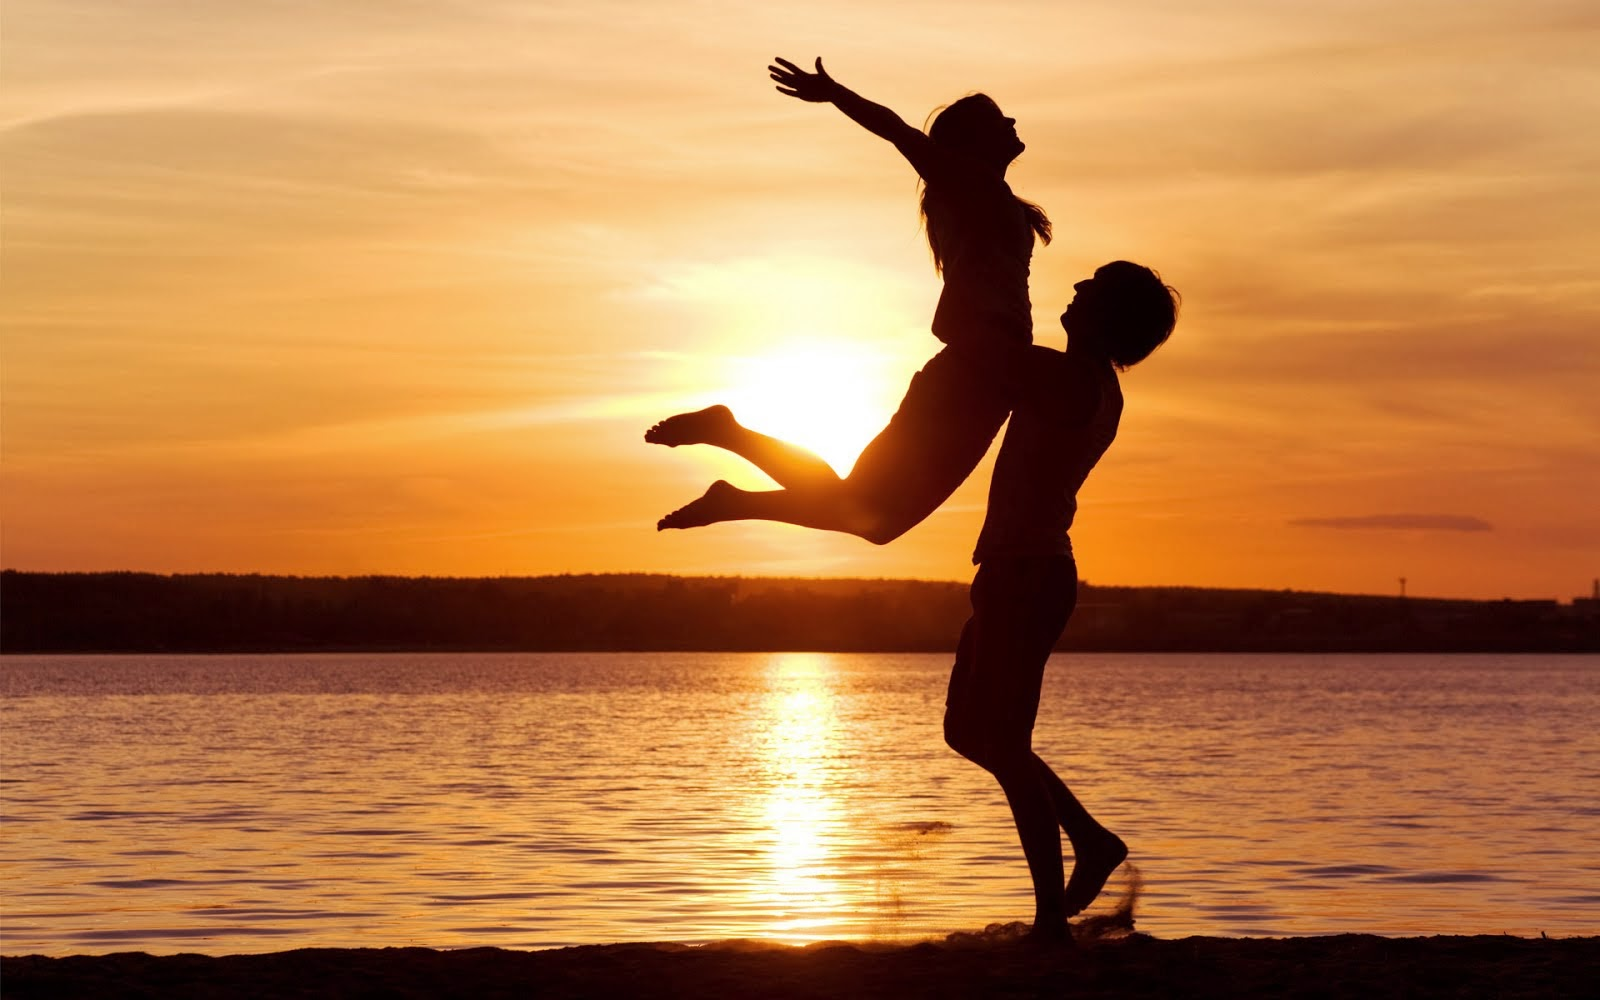 techno wlp: wide wallpapers lovers sunset the sea wallpaper